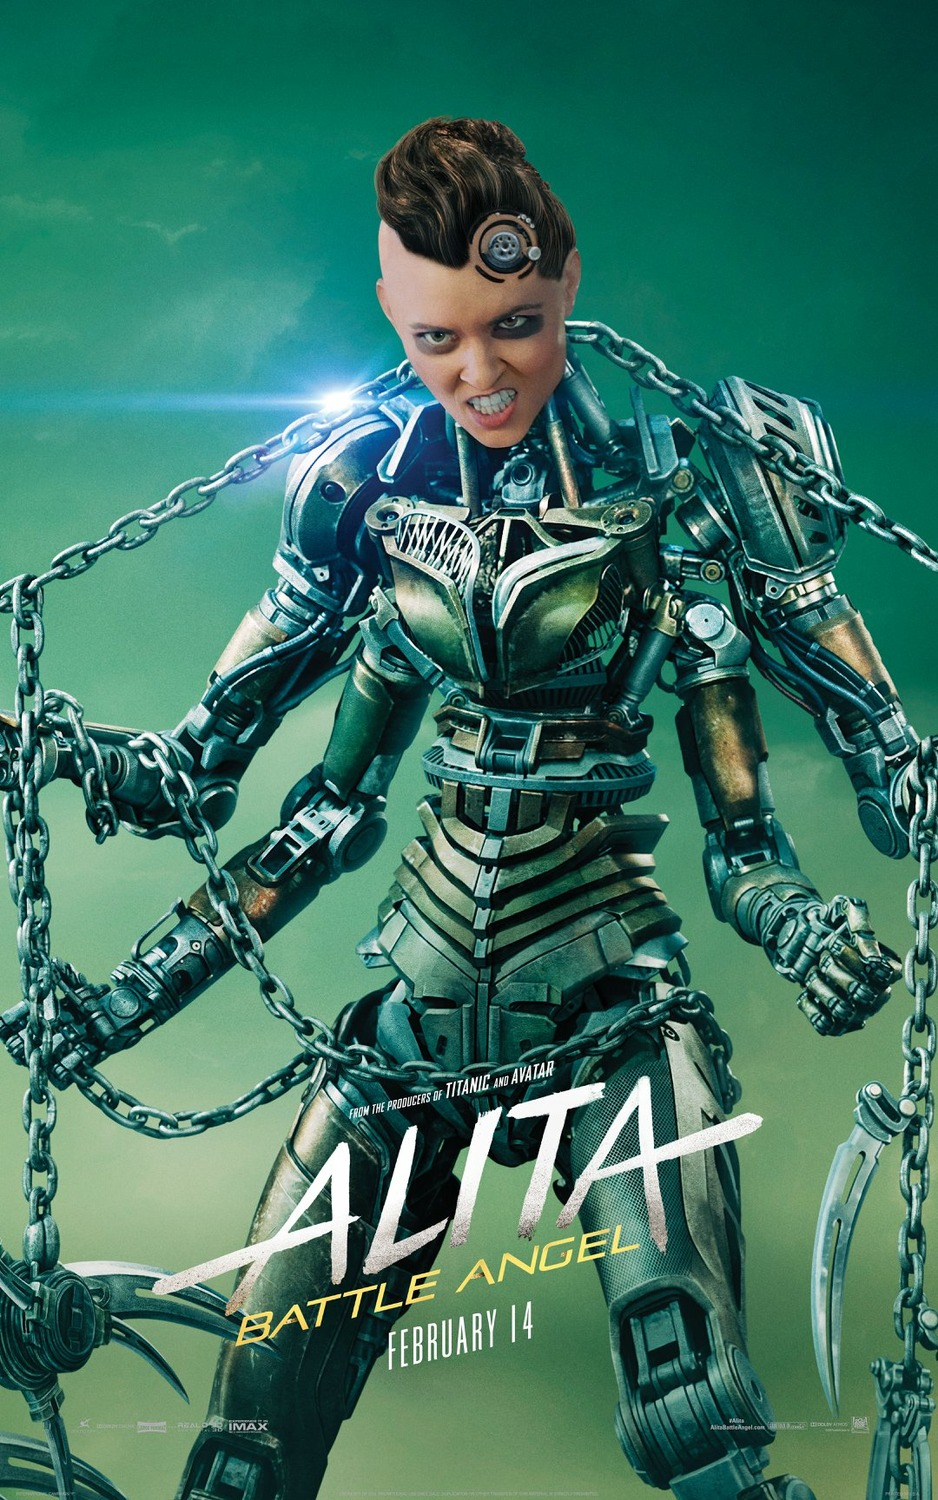 szmk_alita_battle_angel_harc_angyala_3.jpg